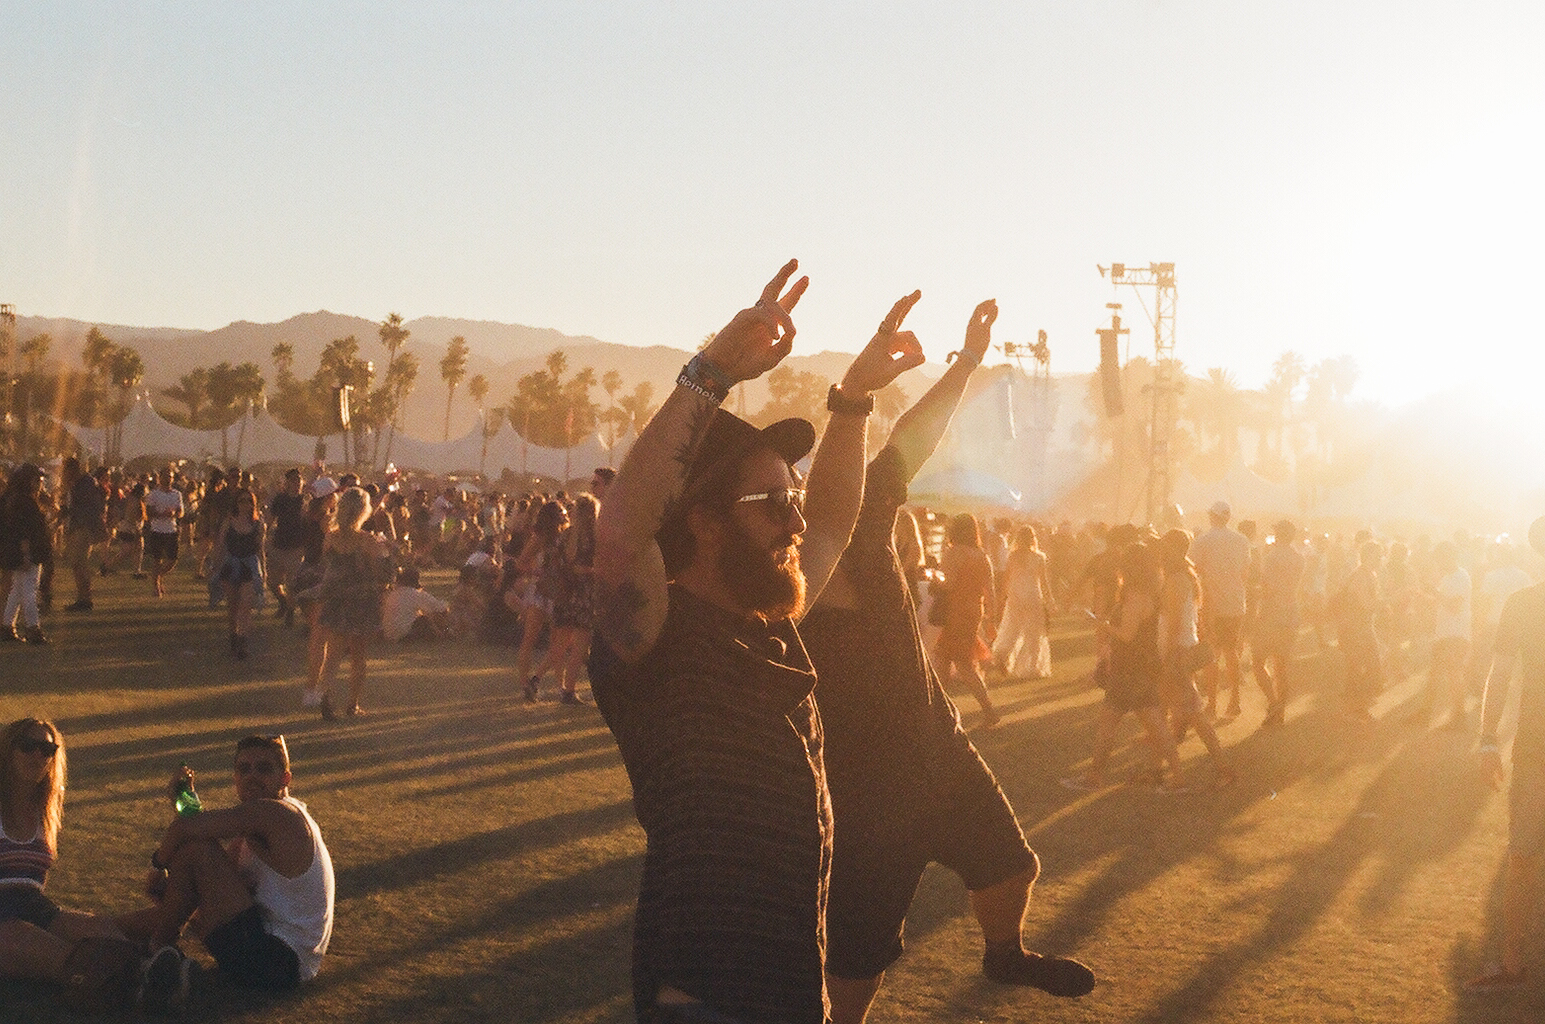 Coachella FILM_web-62830017.jpg